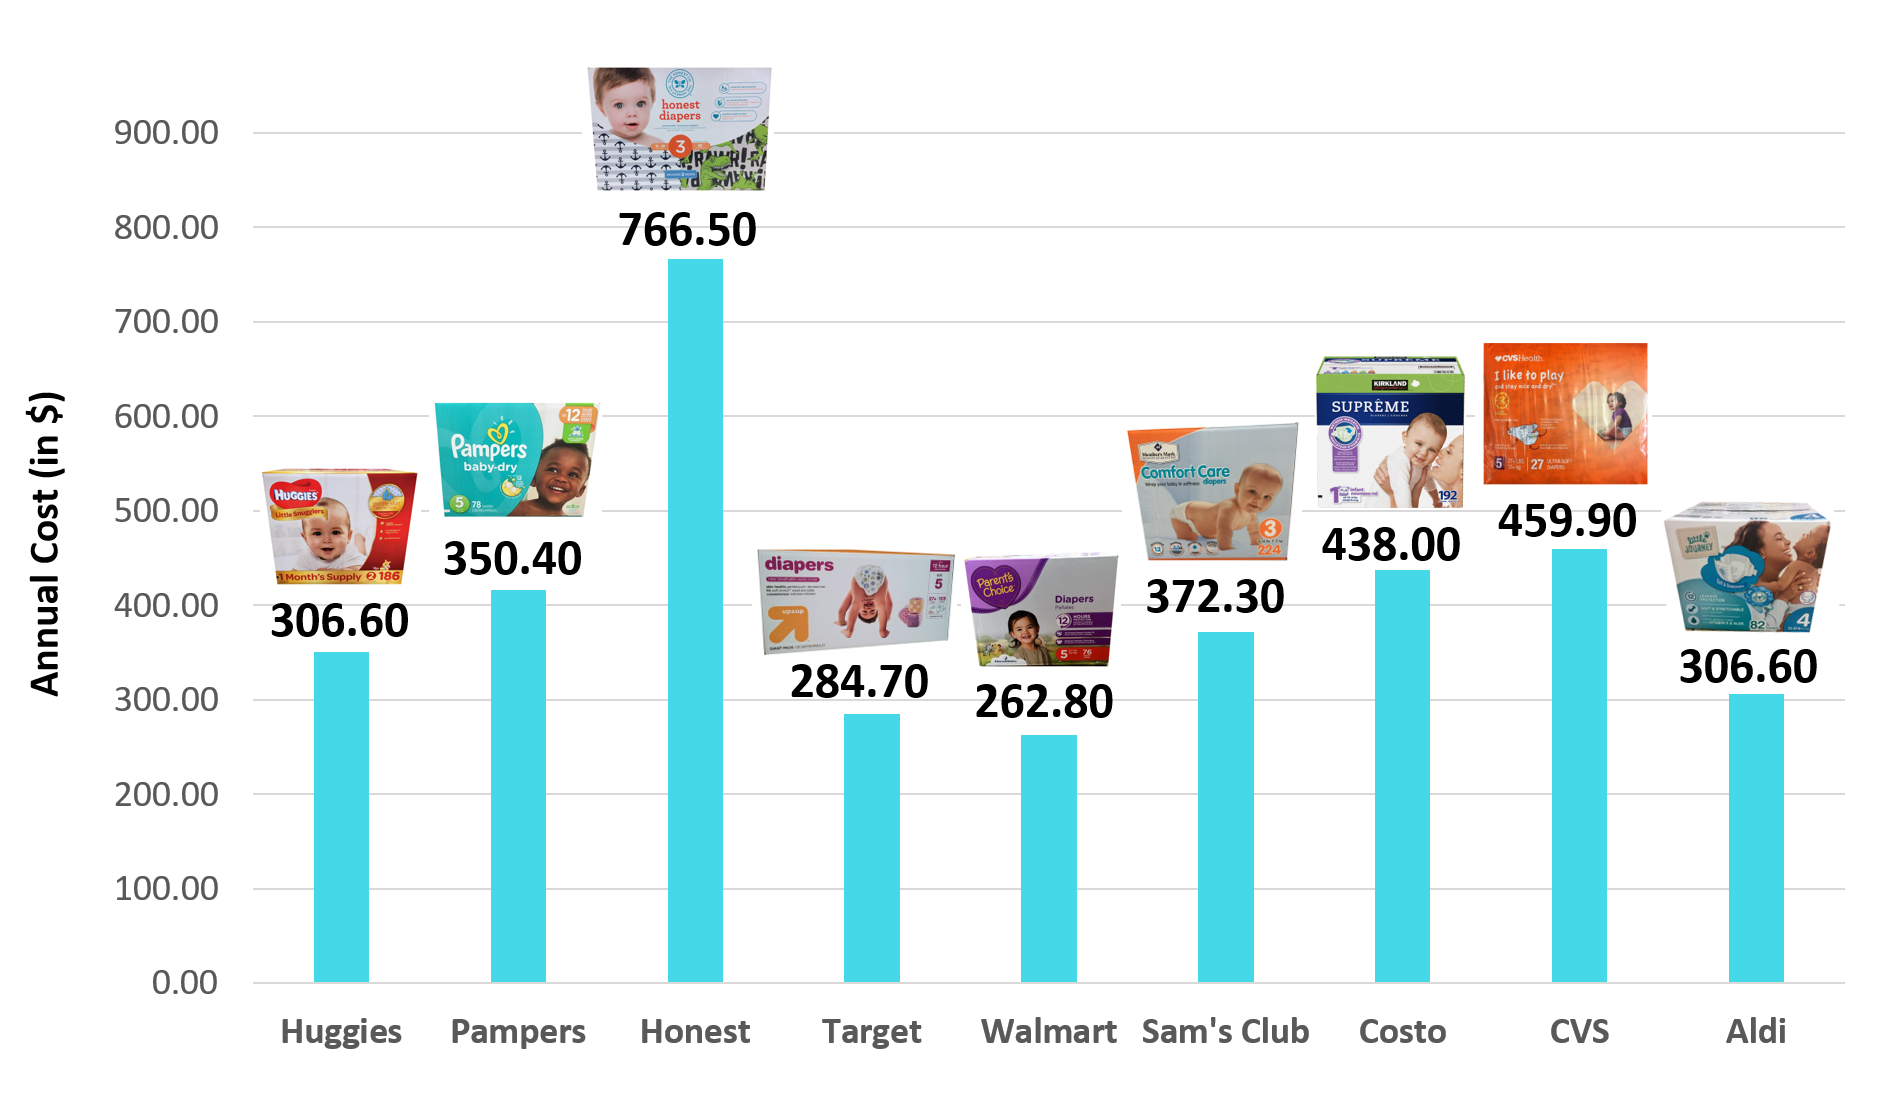 The Master Guide To Buying Diapers Diaper Prices Diaper Price Disposable Diapers Diaper Price Comparison Diaper Prices Buy Diapers Diaper Price Comparison